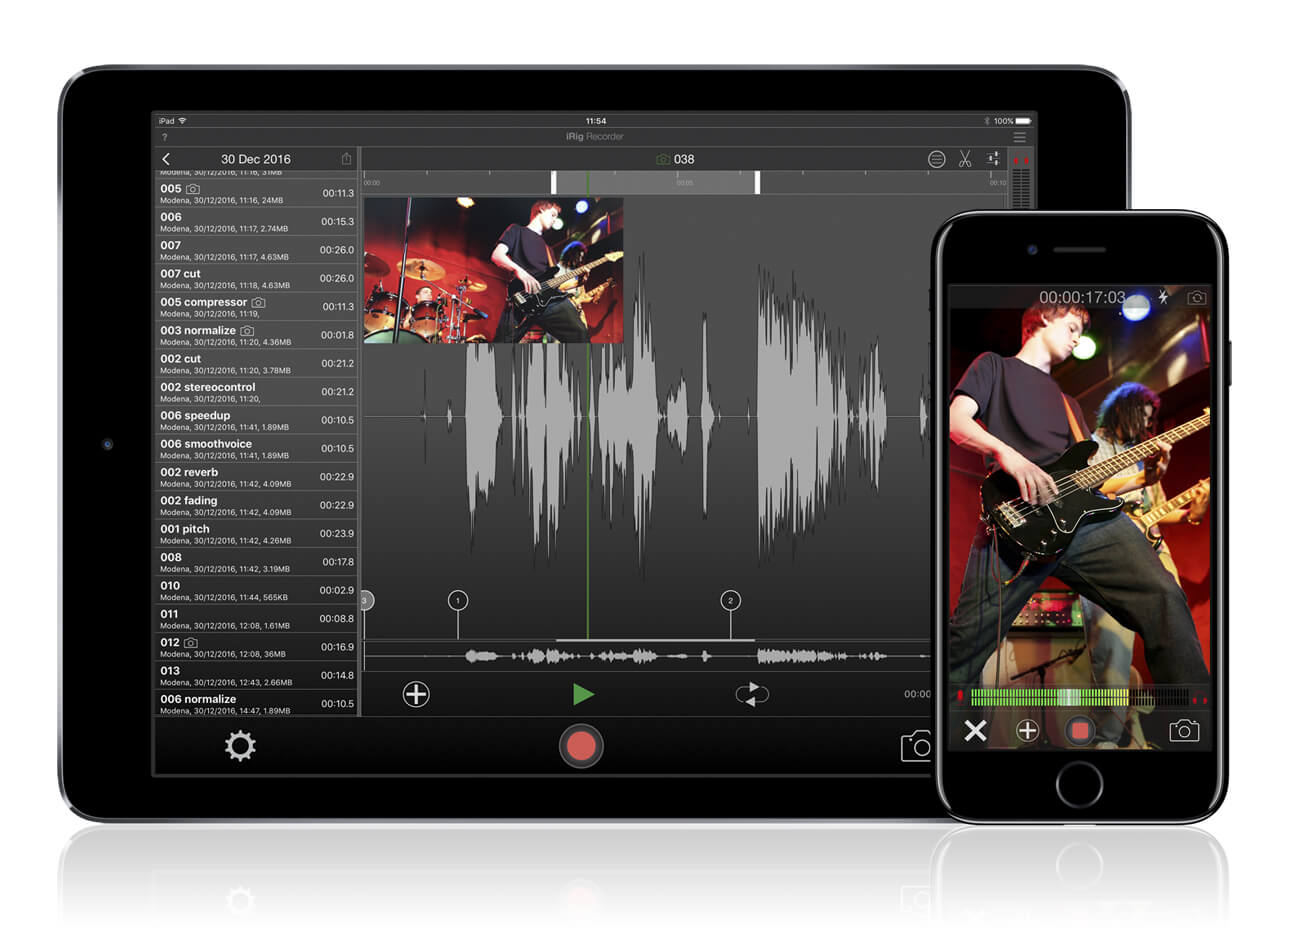 irig recorder 3 audio video recording app for ios released rh rekkerd org Recorder Guide Recorder Notes